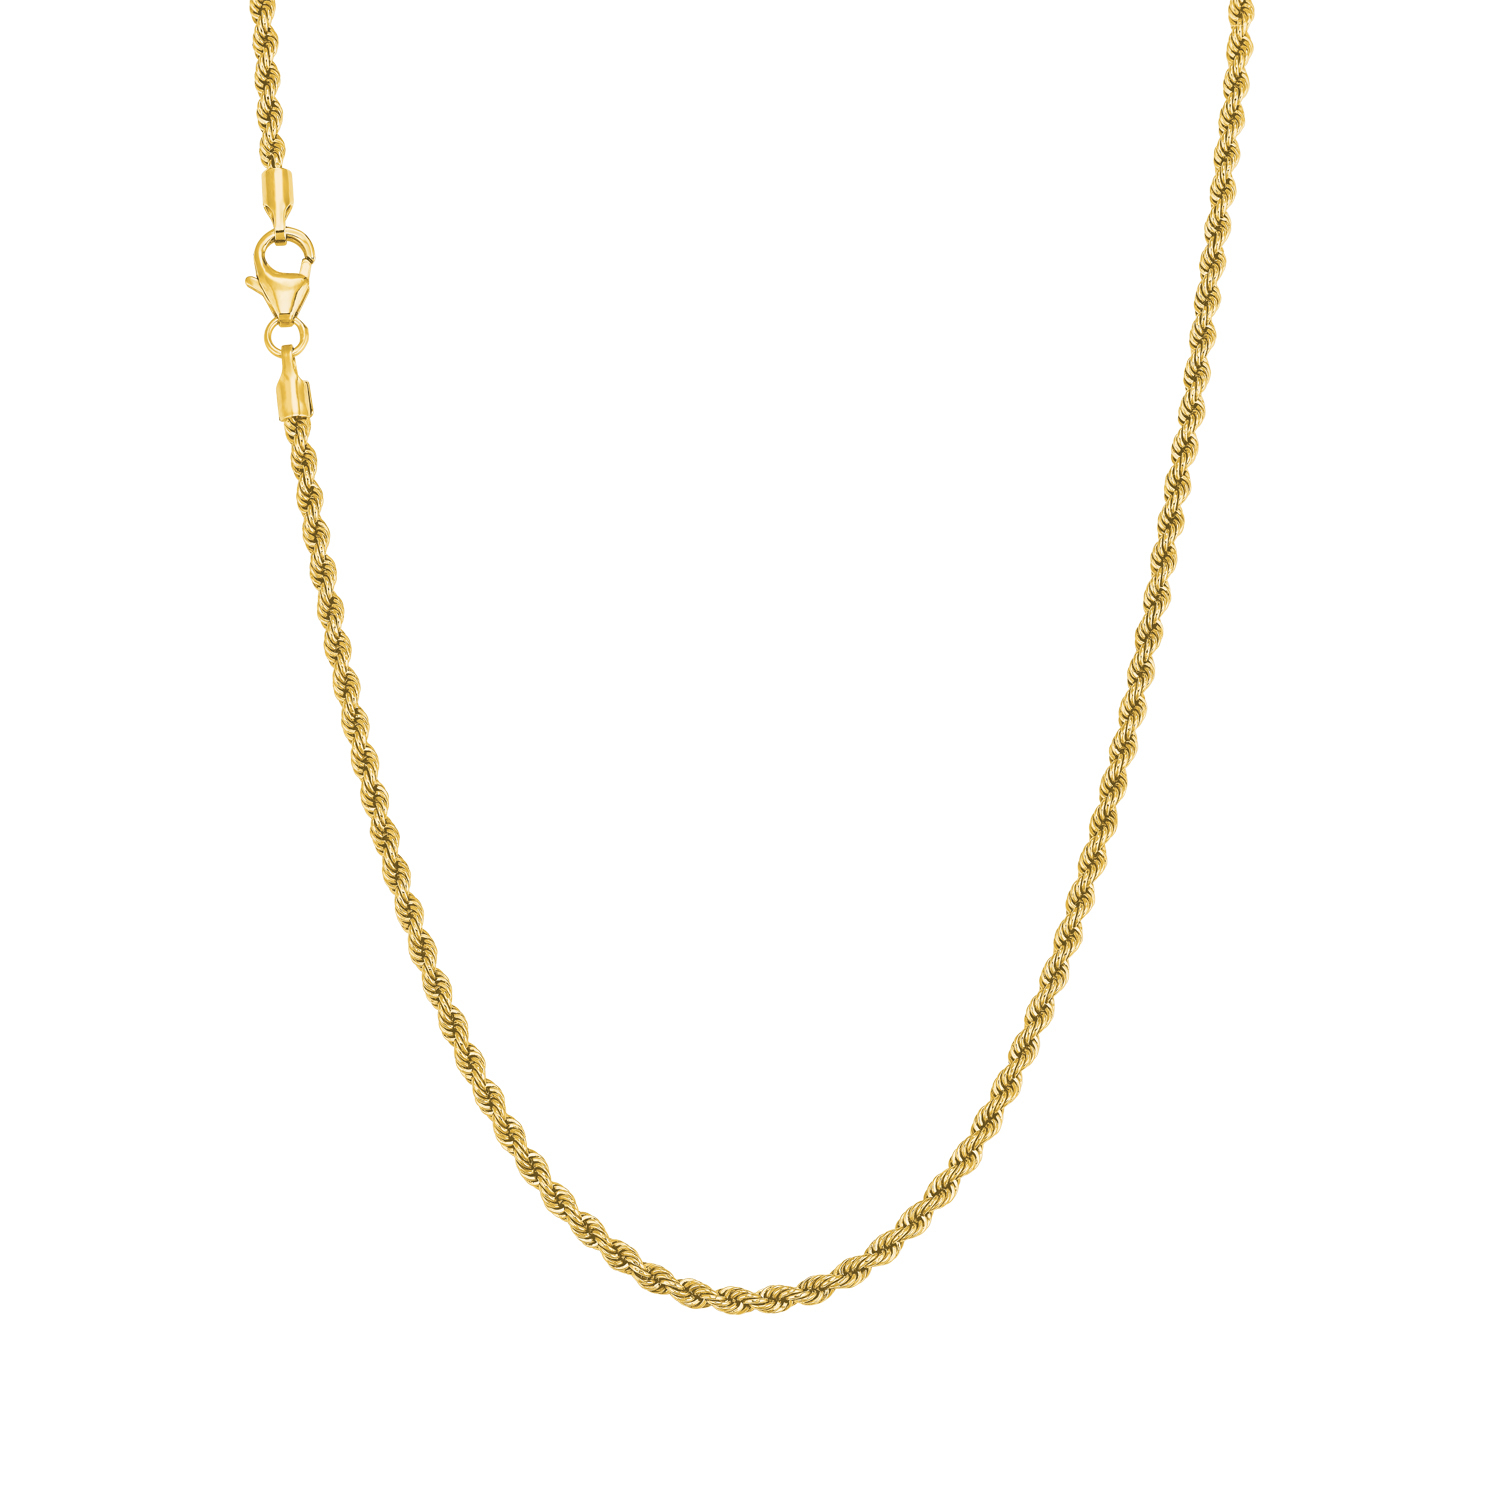 Collier Gold 375/9 ct kein Motiv